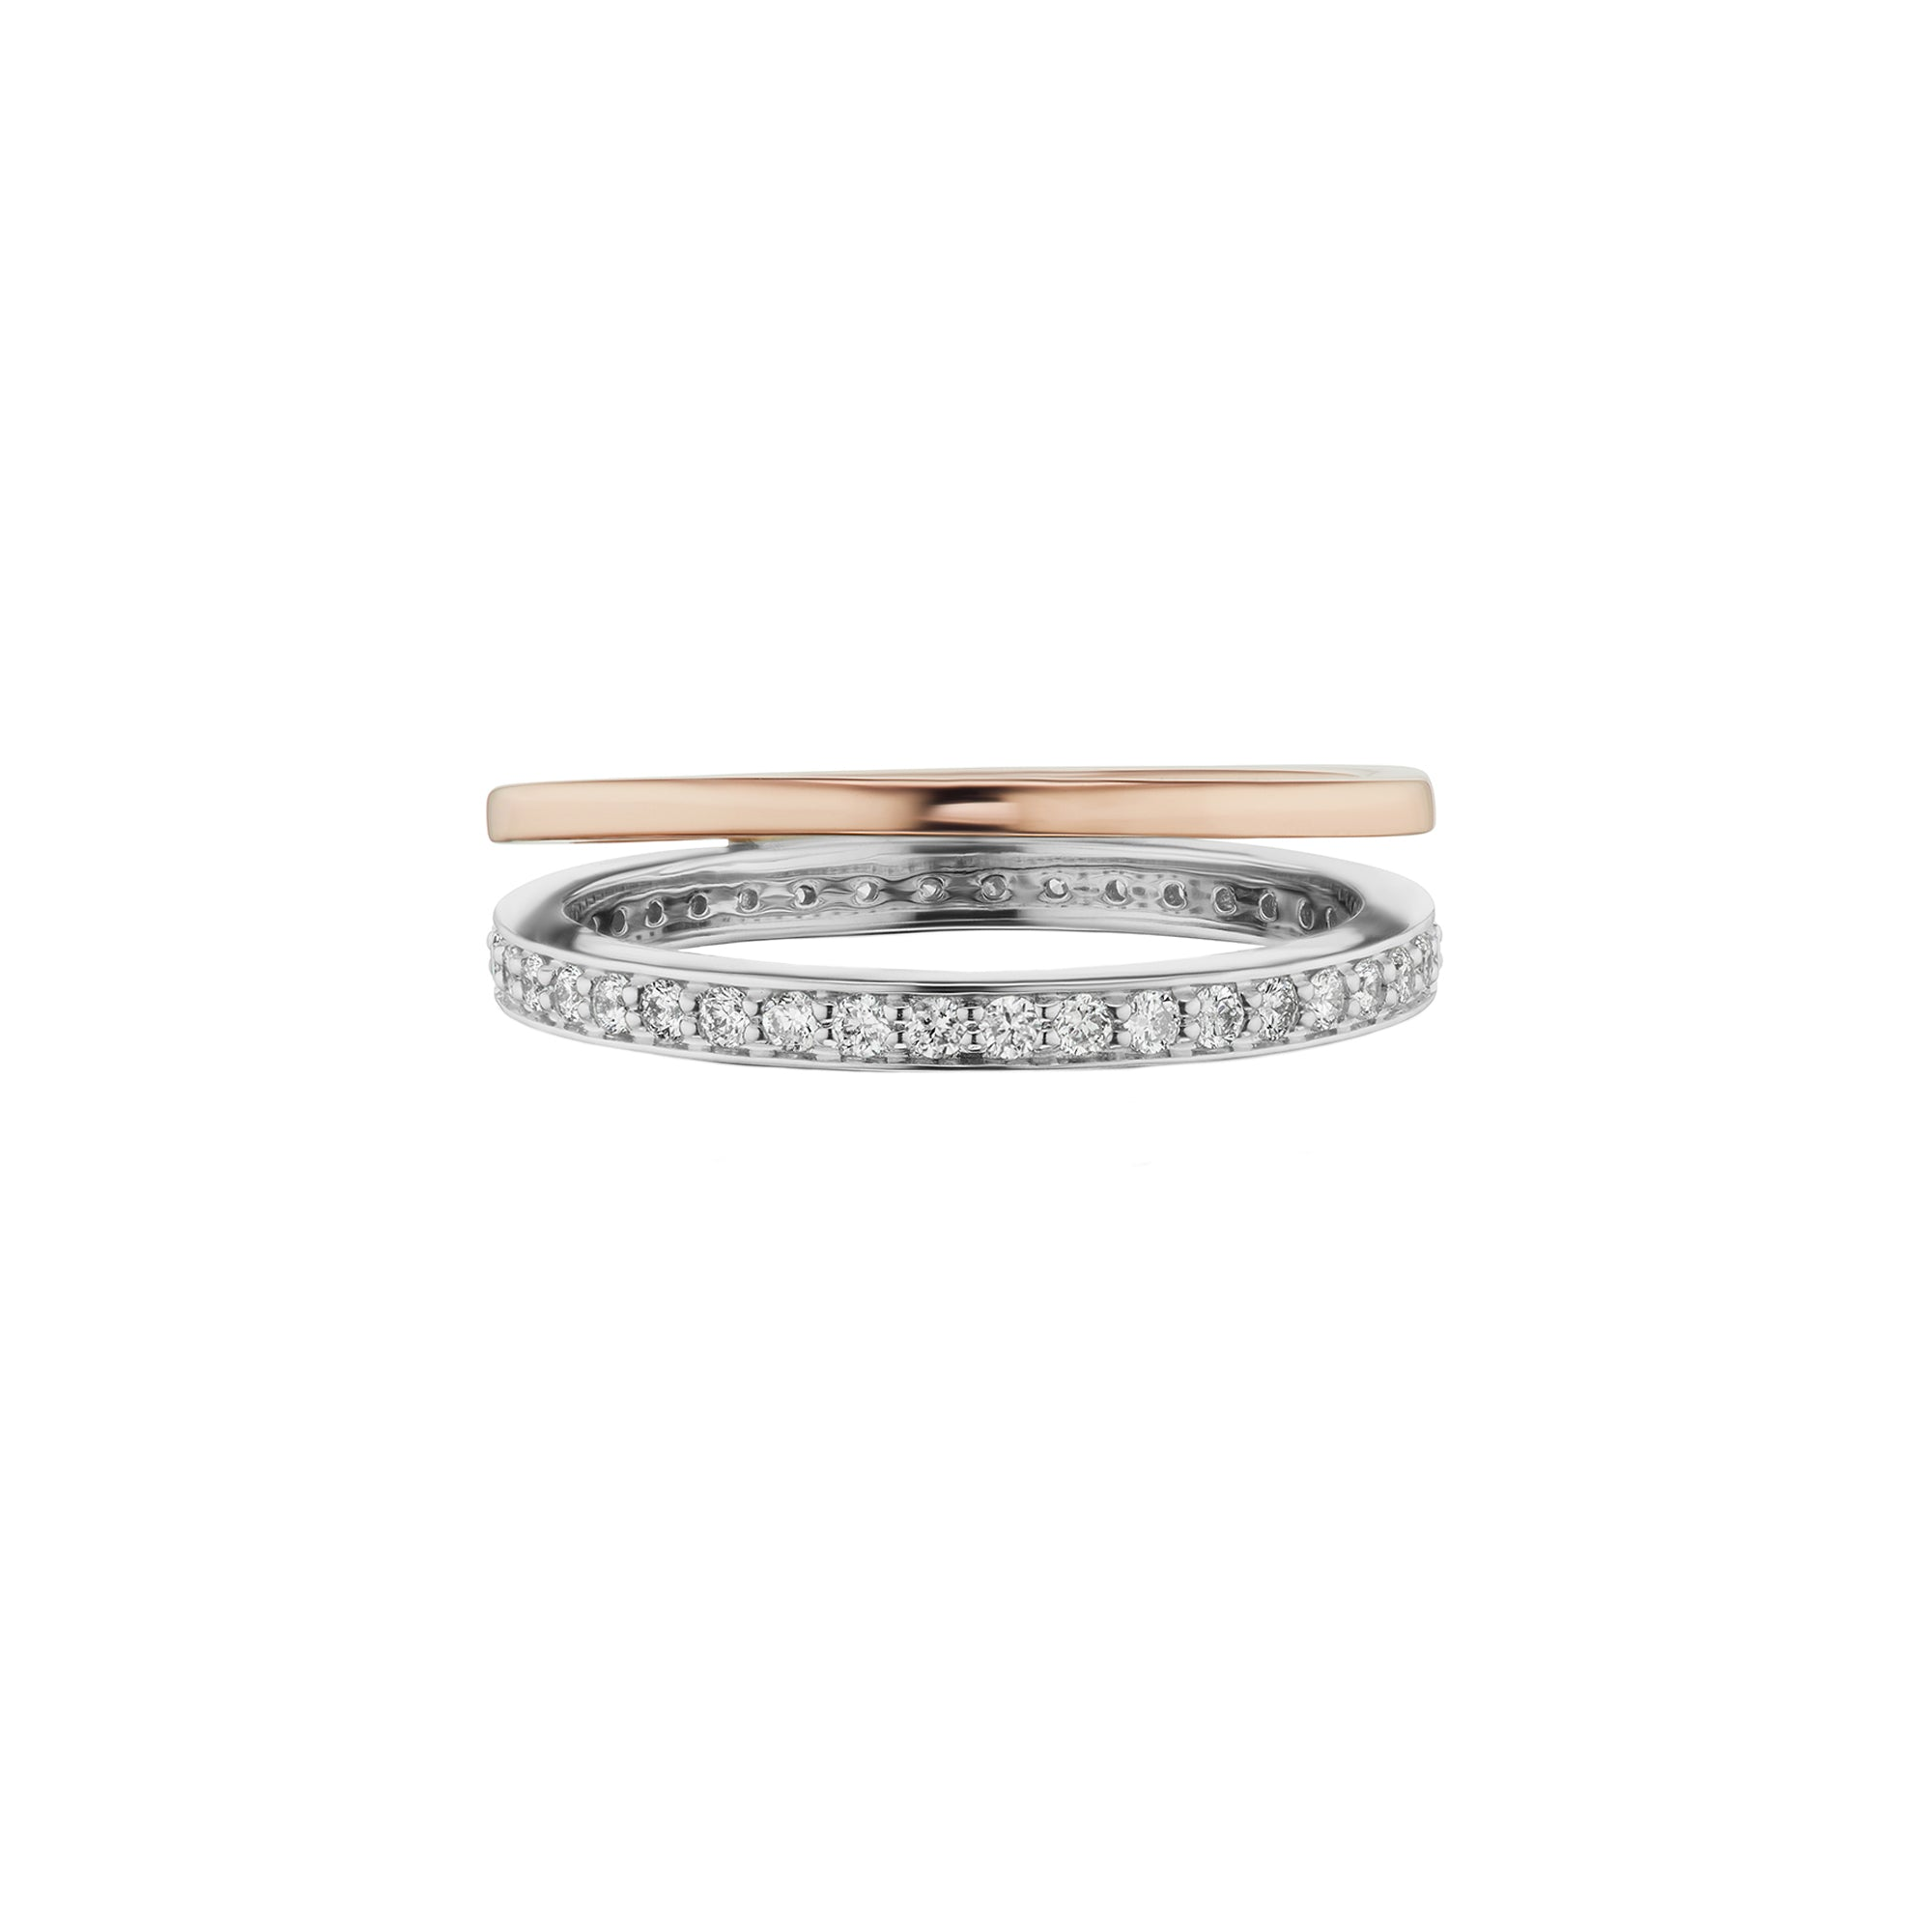 Altruist Espionne Ring I - Rose & White Gold - Rings - Broken English Jewelry